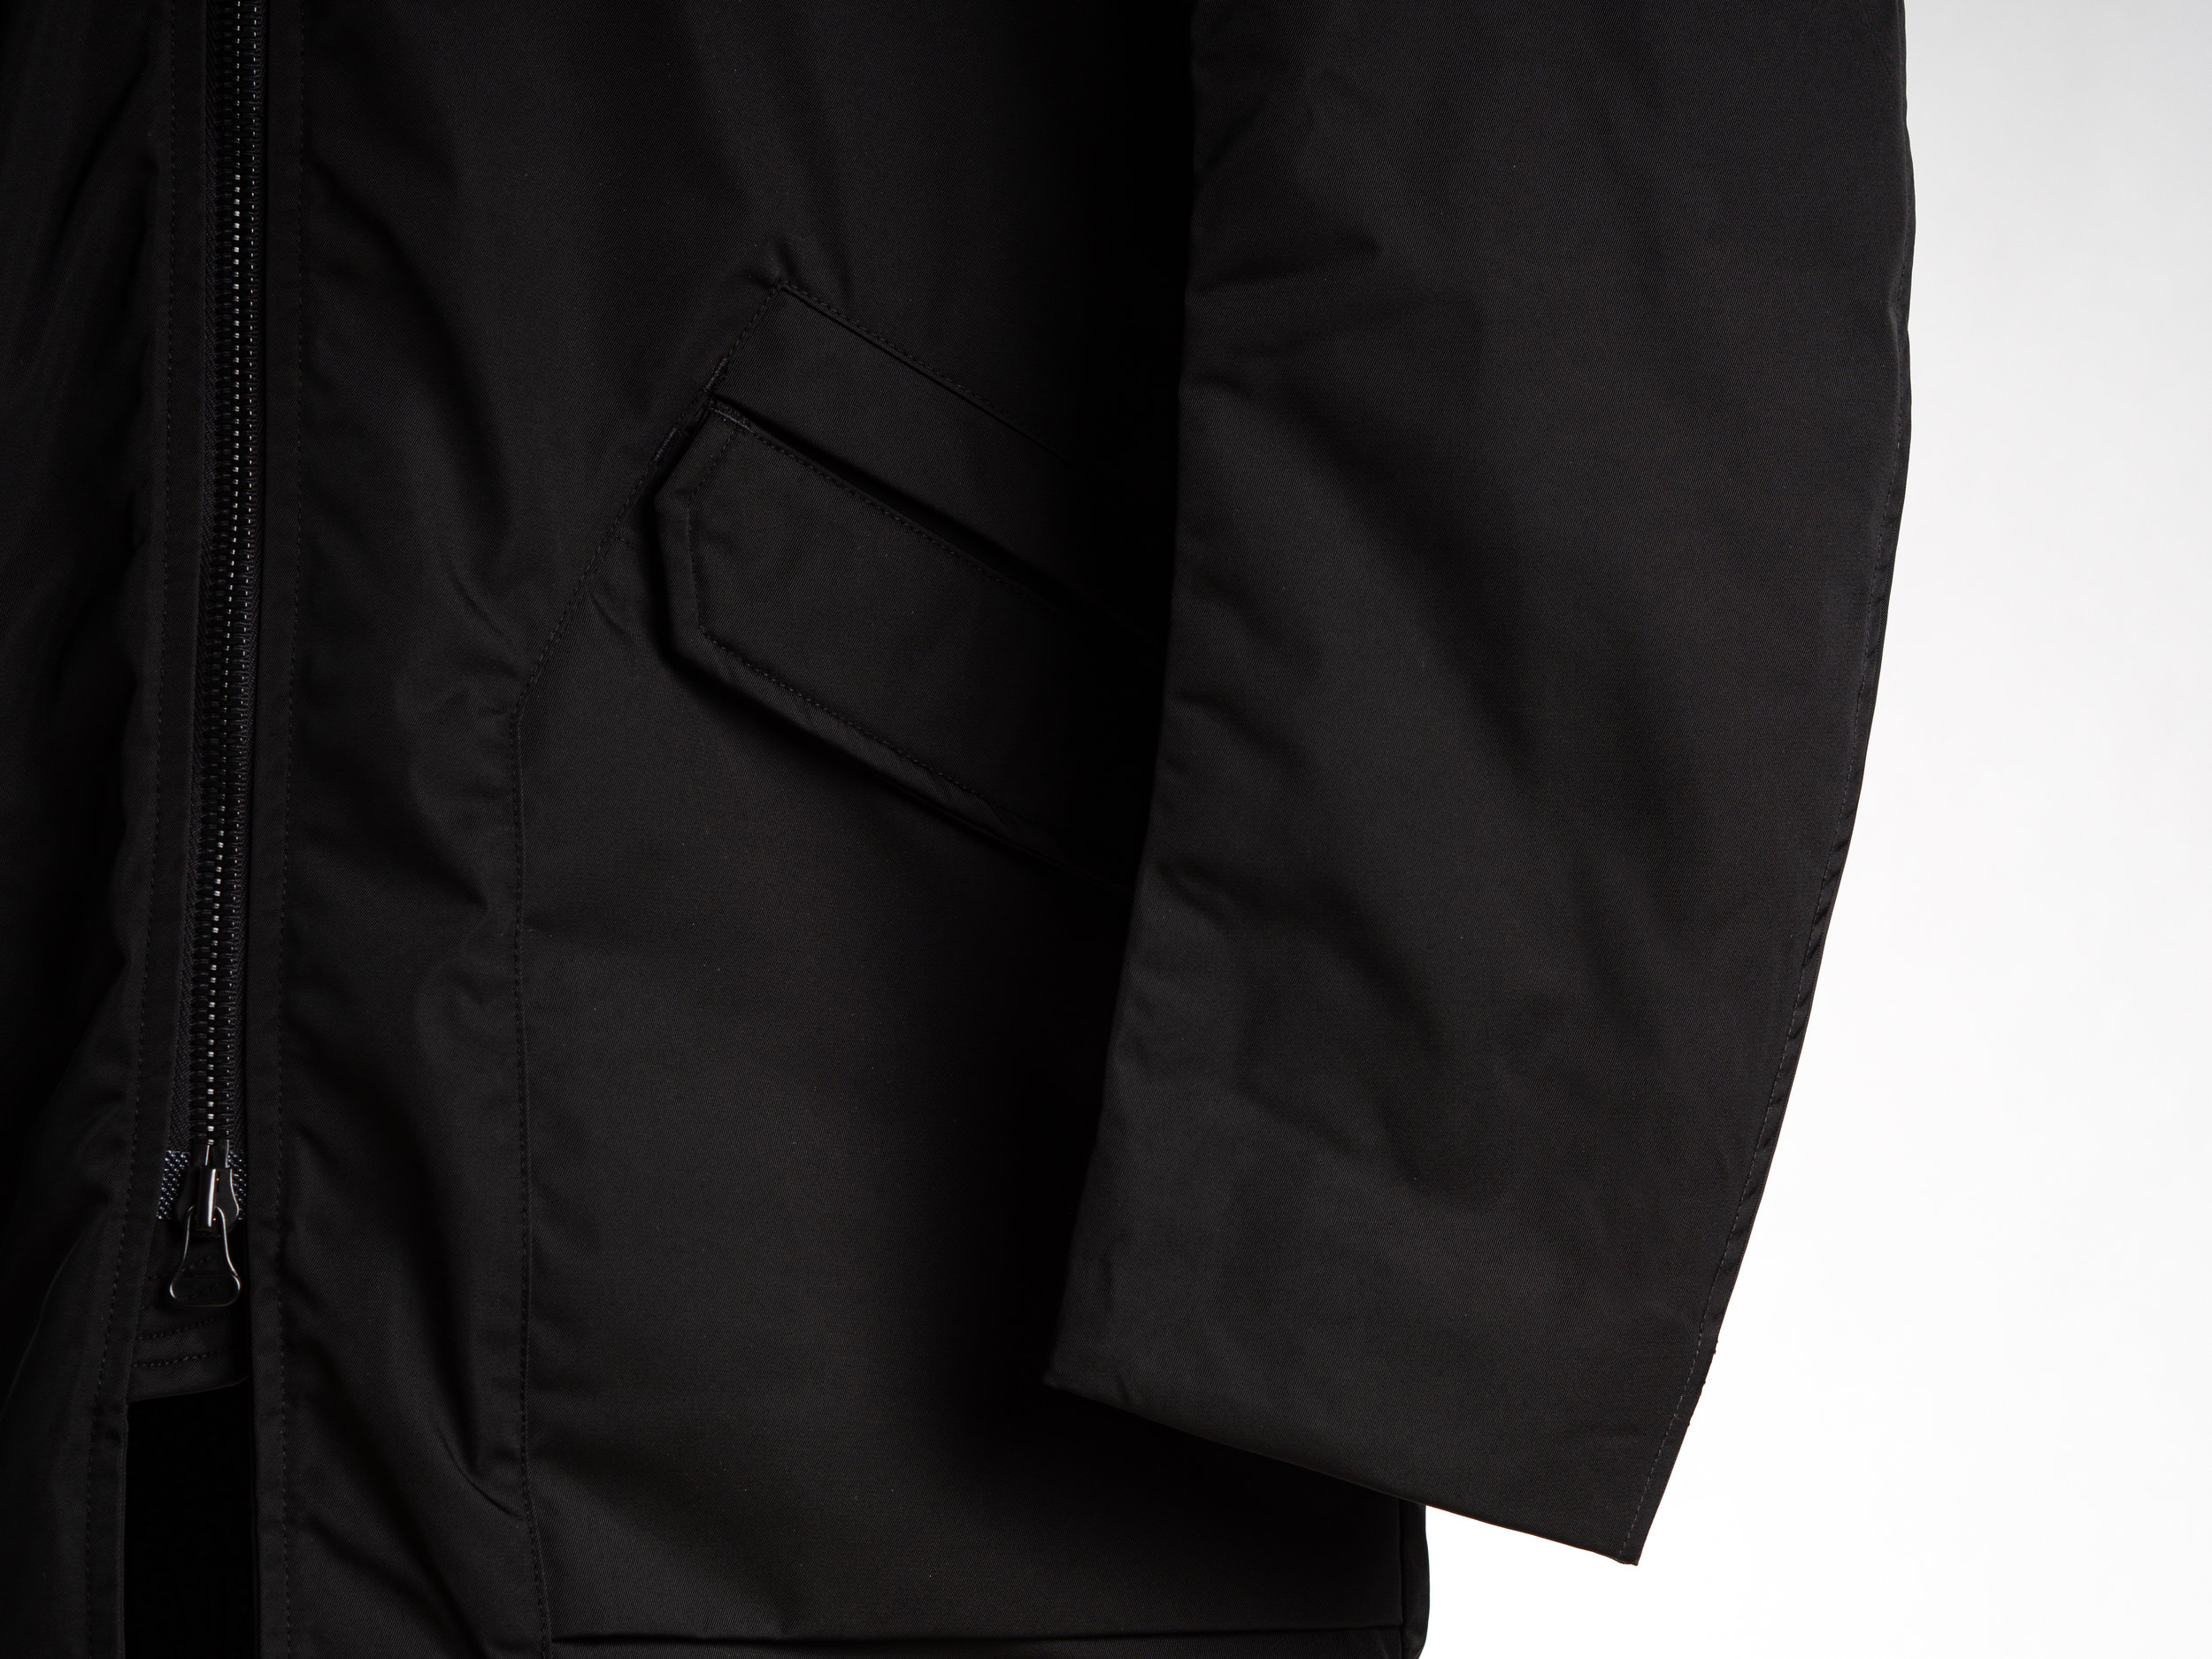 Wings + Horns Solo Twill Shearling Jacket - The Solo Twill Shearling Jacket from wings+horns pairs a densely woven Japanese nylon face fabric with a Polartec® fleece lining. The Japanese nylon breaks wind and water, while the Polartec® prevents heat loss, regulating core body temperature, all the while remaining durable and compact. The jacket is finished with double entry storm pockets, gusseted underarms, articulated sleeves, a hang tab on the yoke, and a two way RiRi zipper.